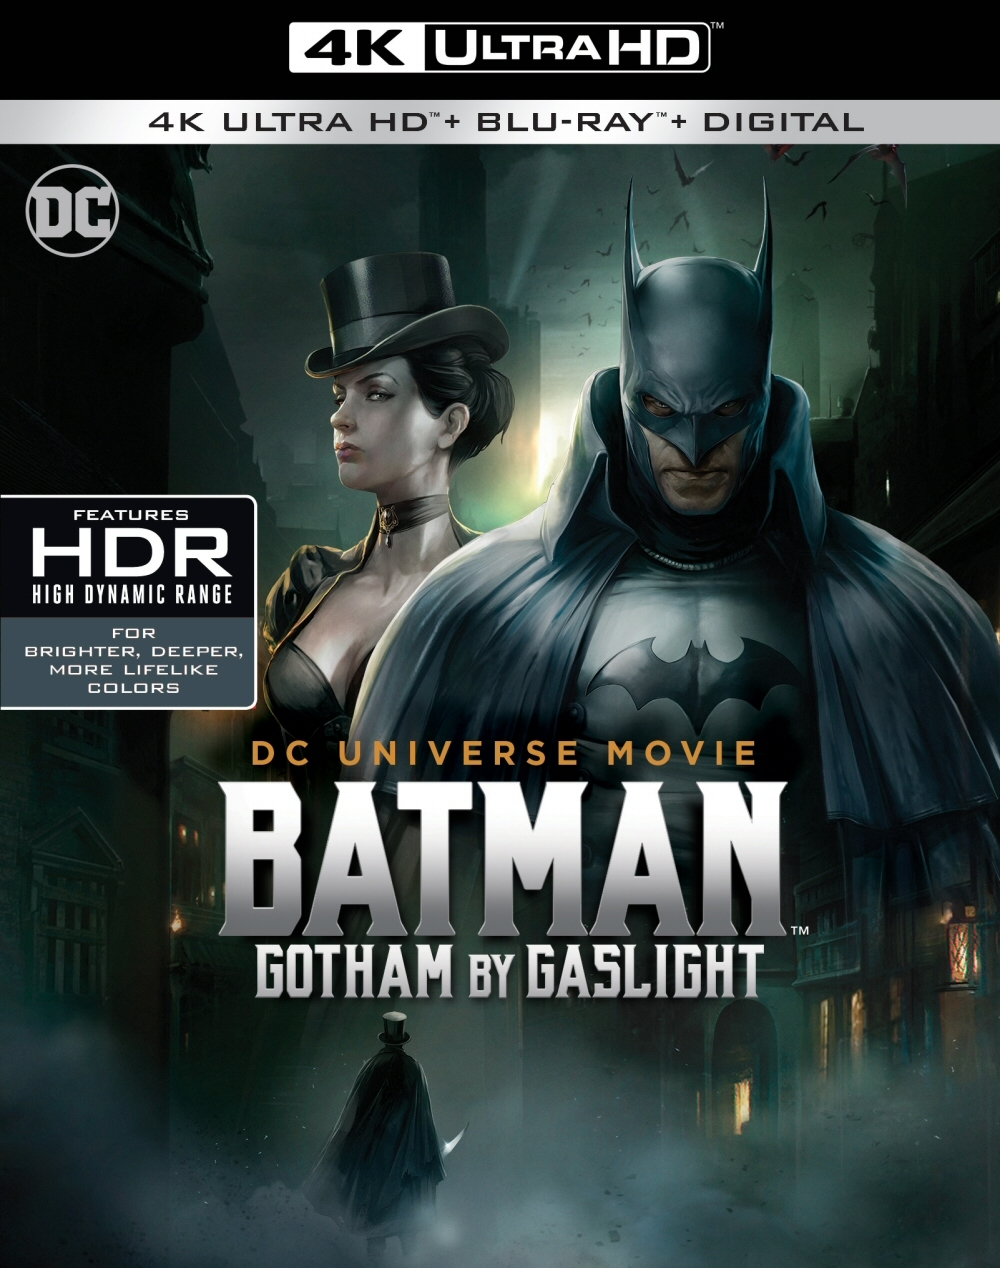 Batman: Gotham by Gaslight 4K (2018) UHD Ultra HD Blu-ray